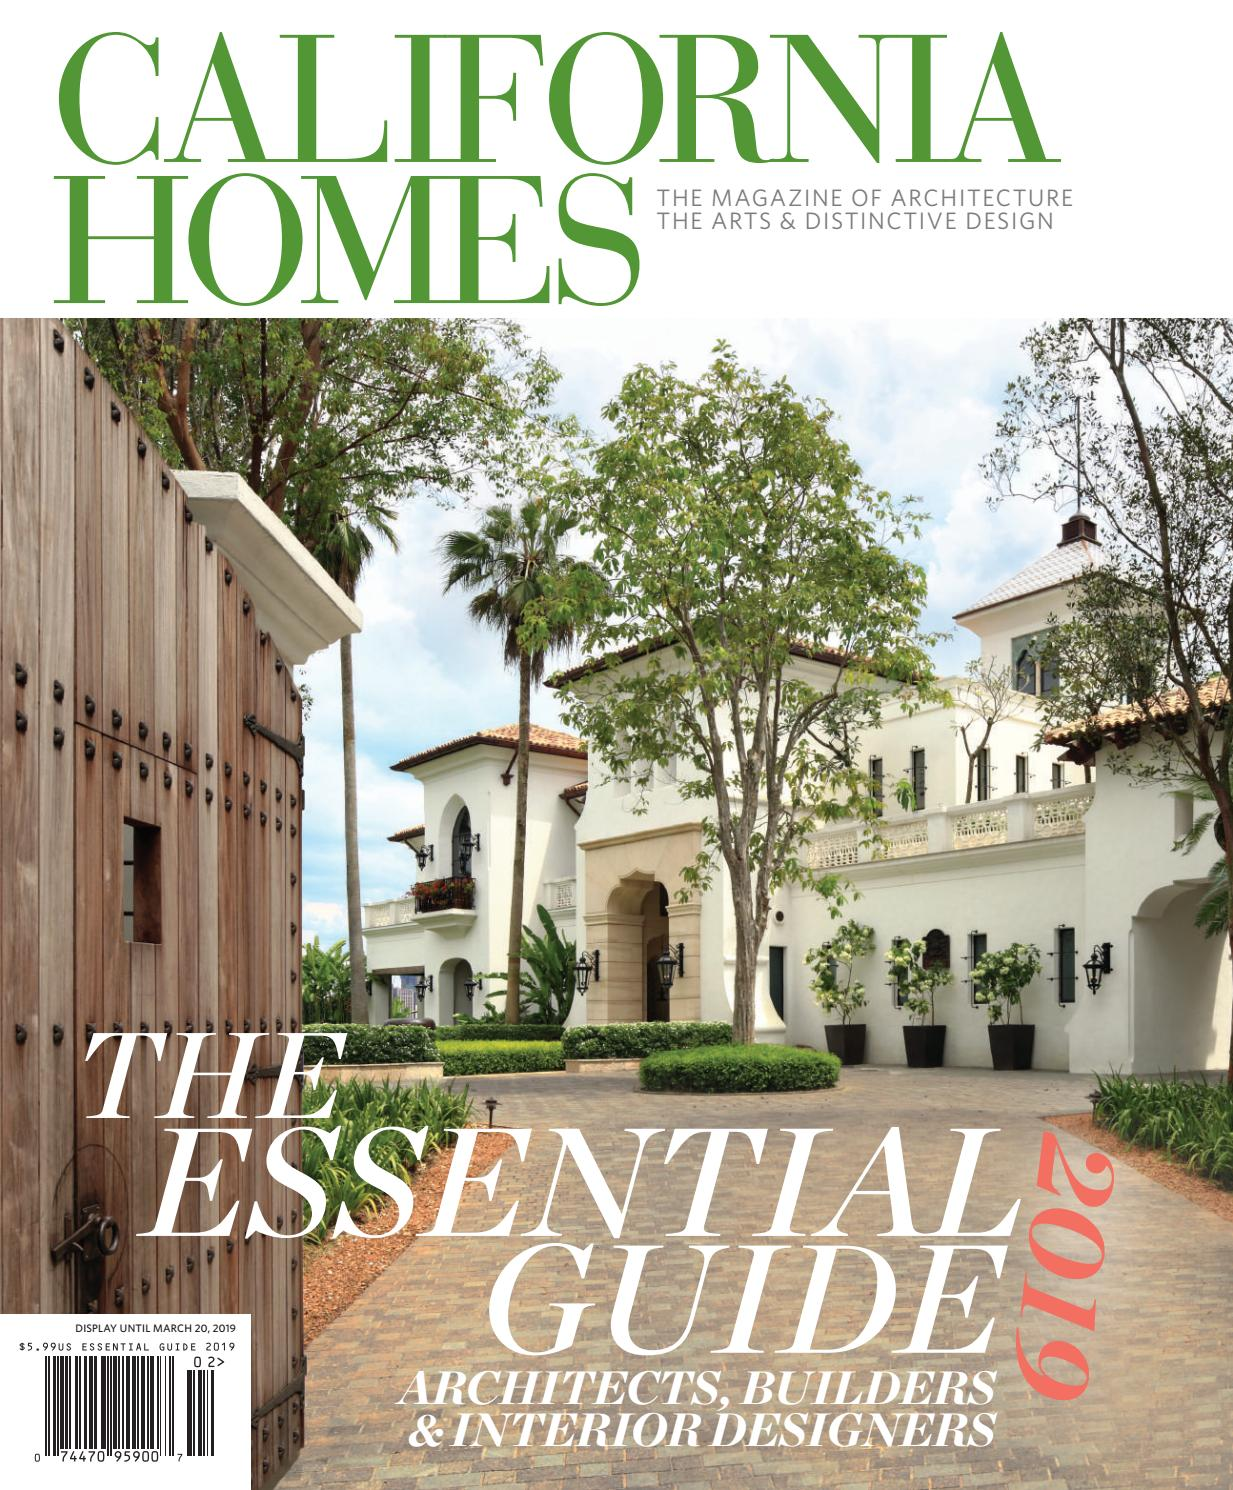 California homes the essential guide to architects builders and interior designers 2019 by california homes magazine issuu